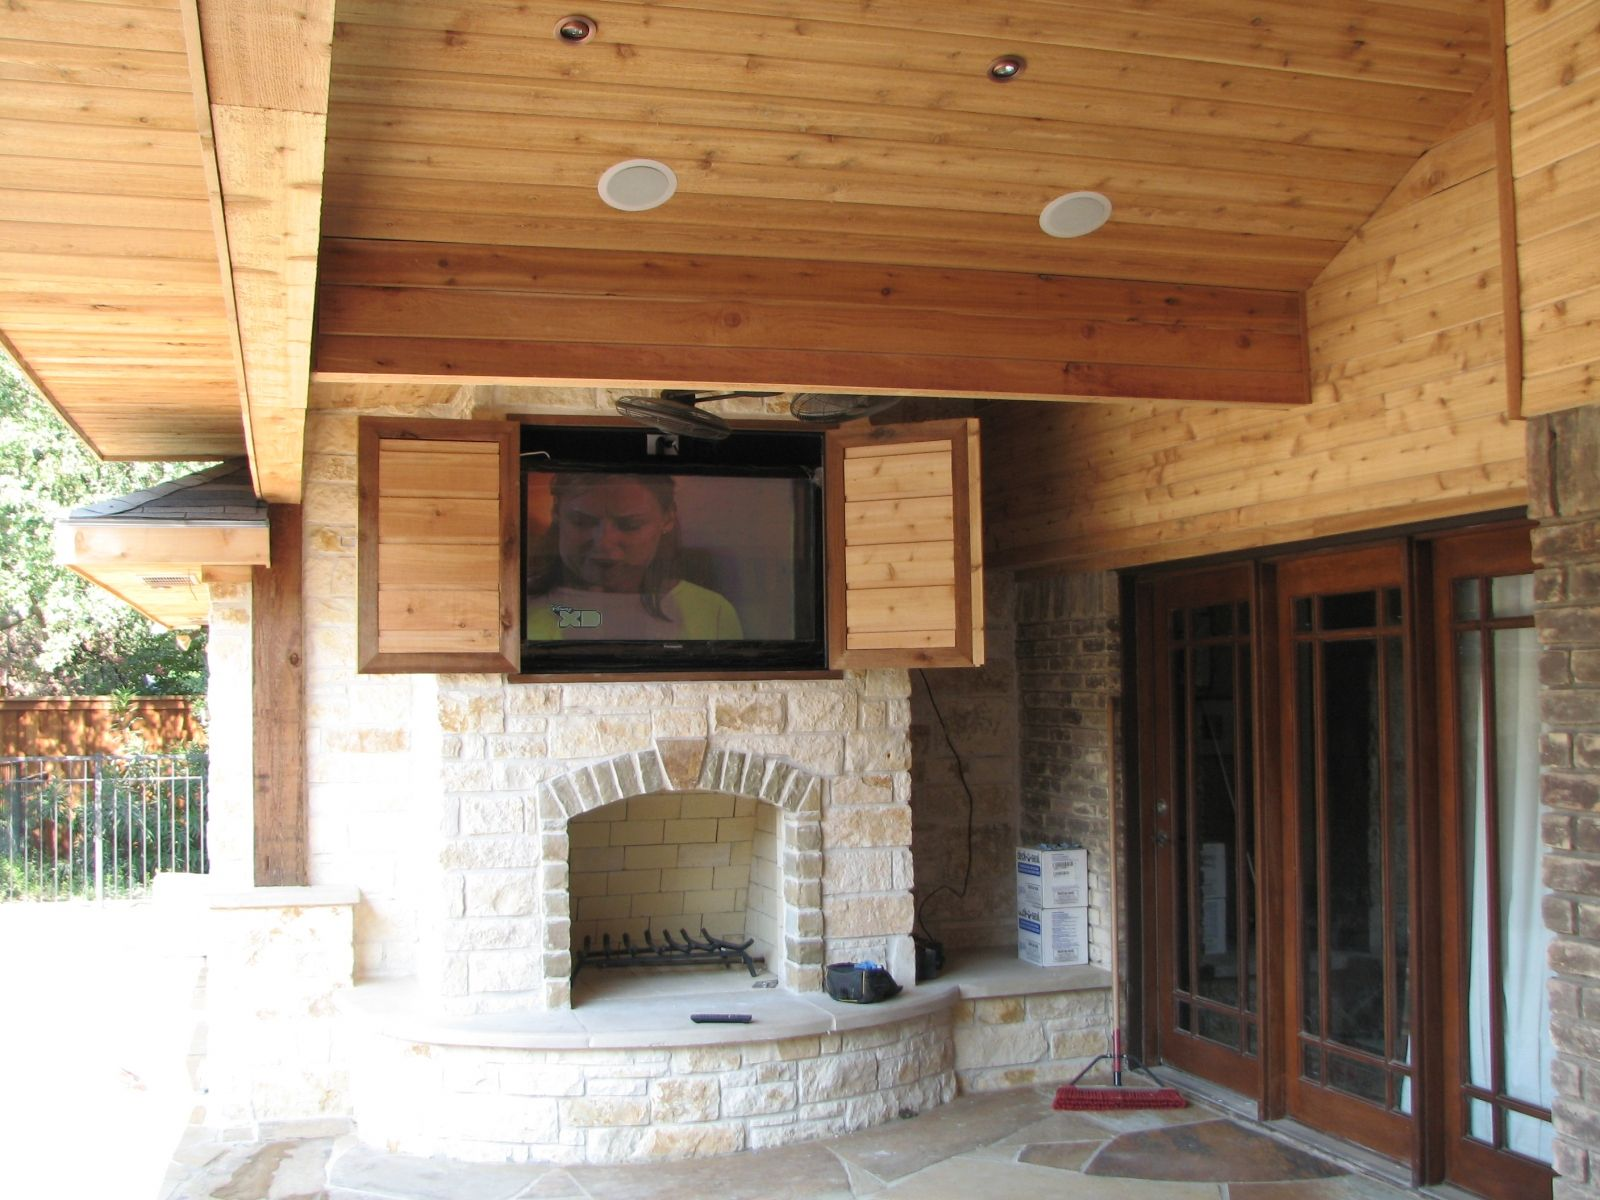 Marvelous Stacked Stone Rustic Fireplace Under Built In Outdoor Tv Cabinet  With Wooden Ceiling Exposed As Inspiring Veranda Decor Ideas